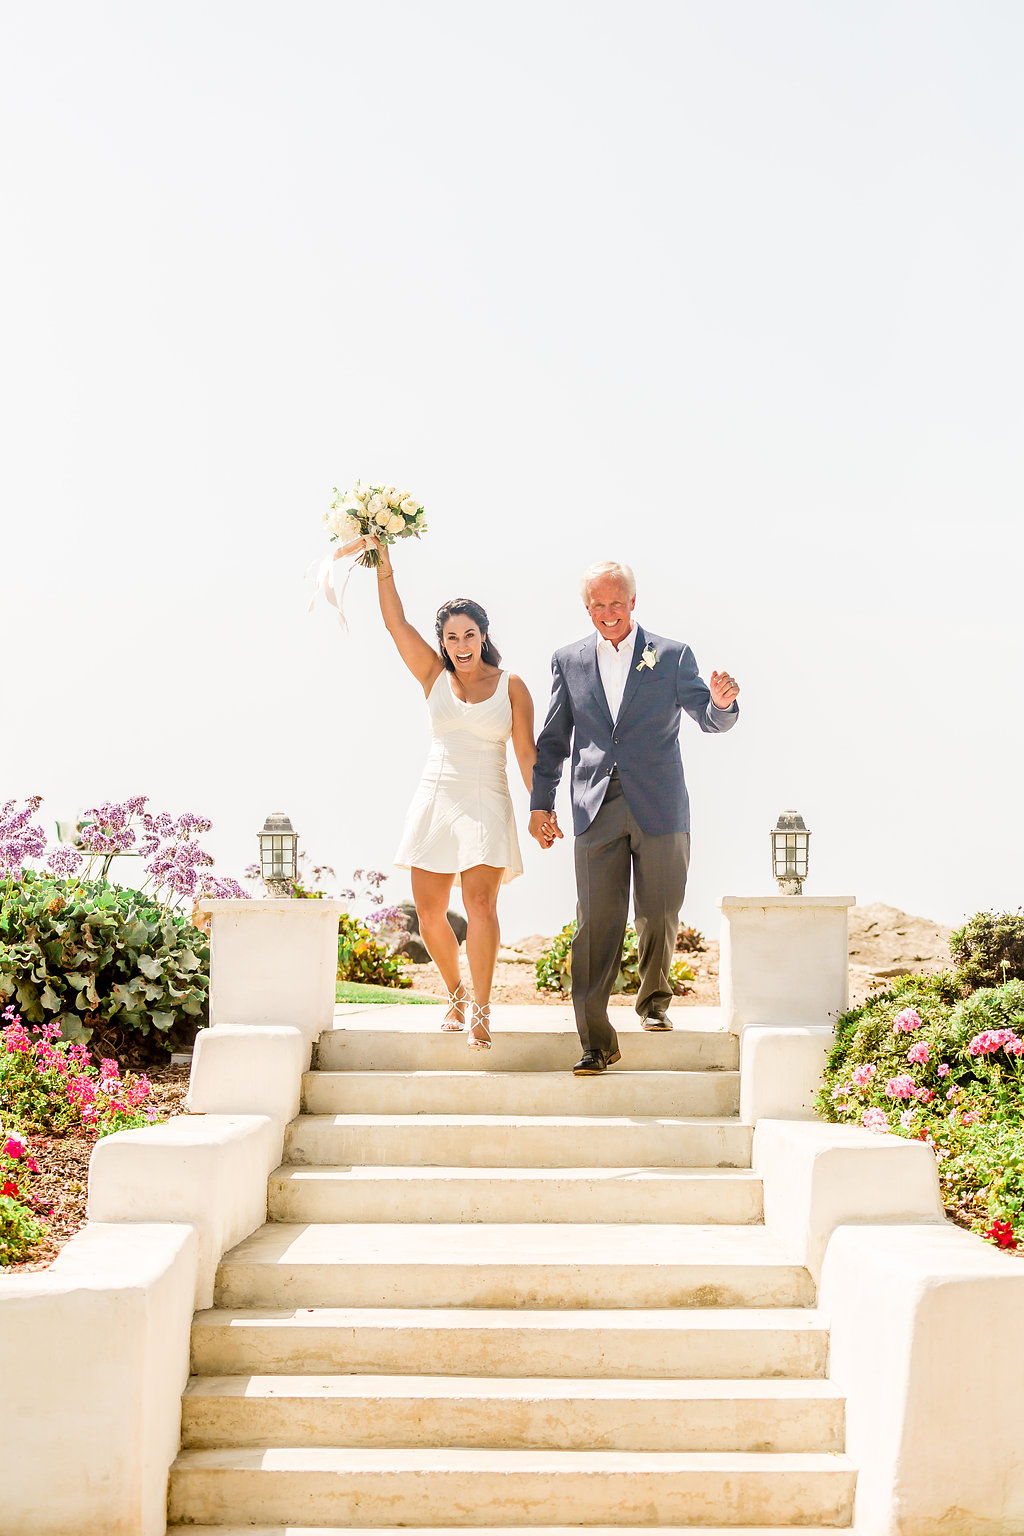 santa-barbara-elopement-wedding-planner-coordinator-day-of-elope-beach-beachfront-private-ocean-view-garden (10).jpg